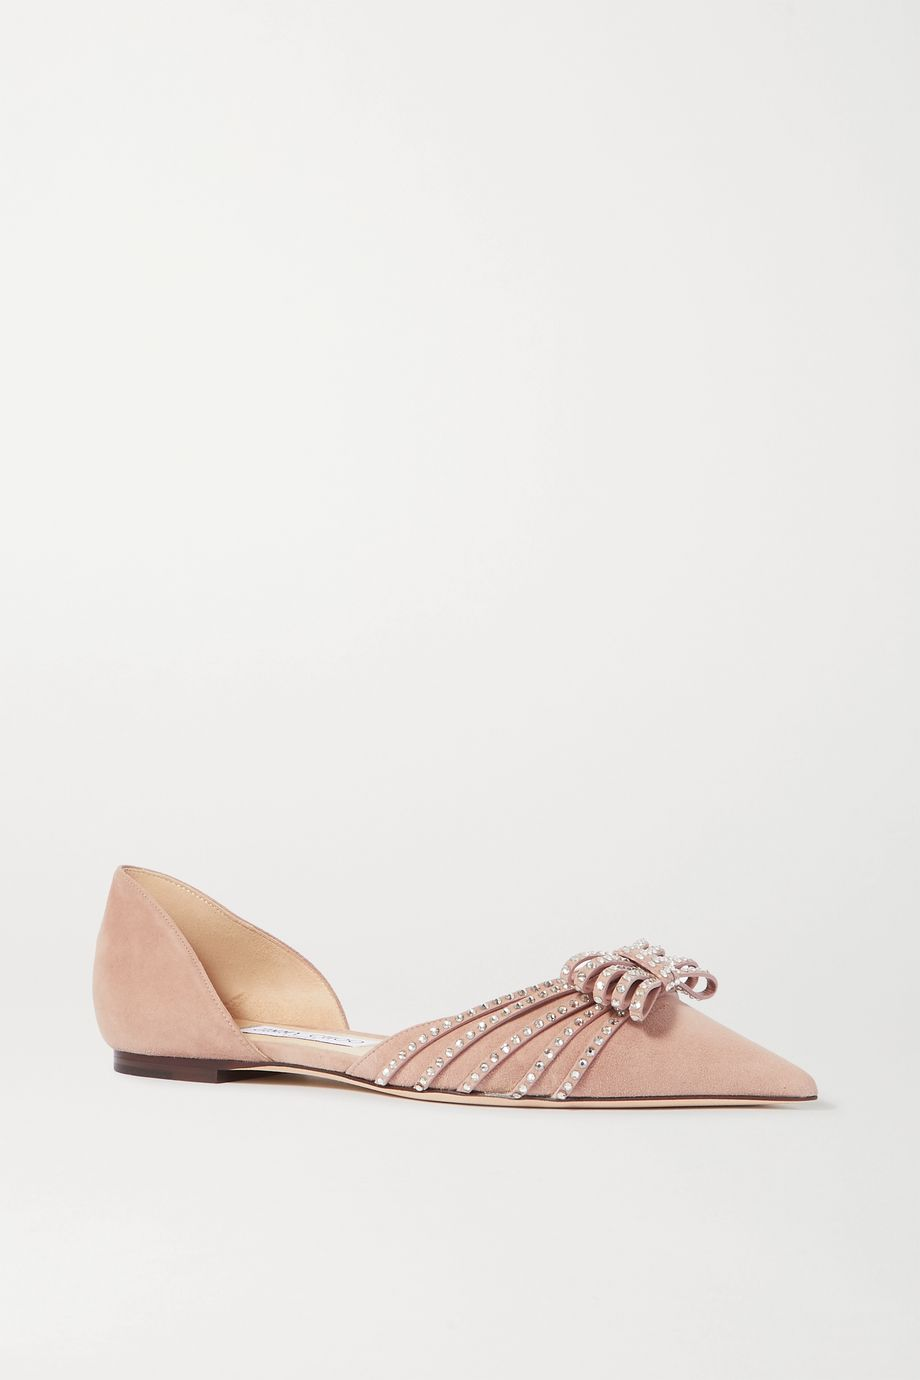 Jimmy Choo Kaitence crystal-embellished suede point-toe flats